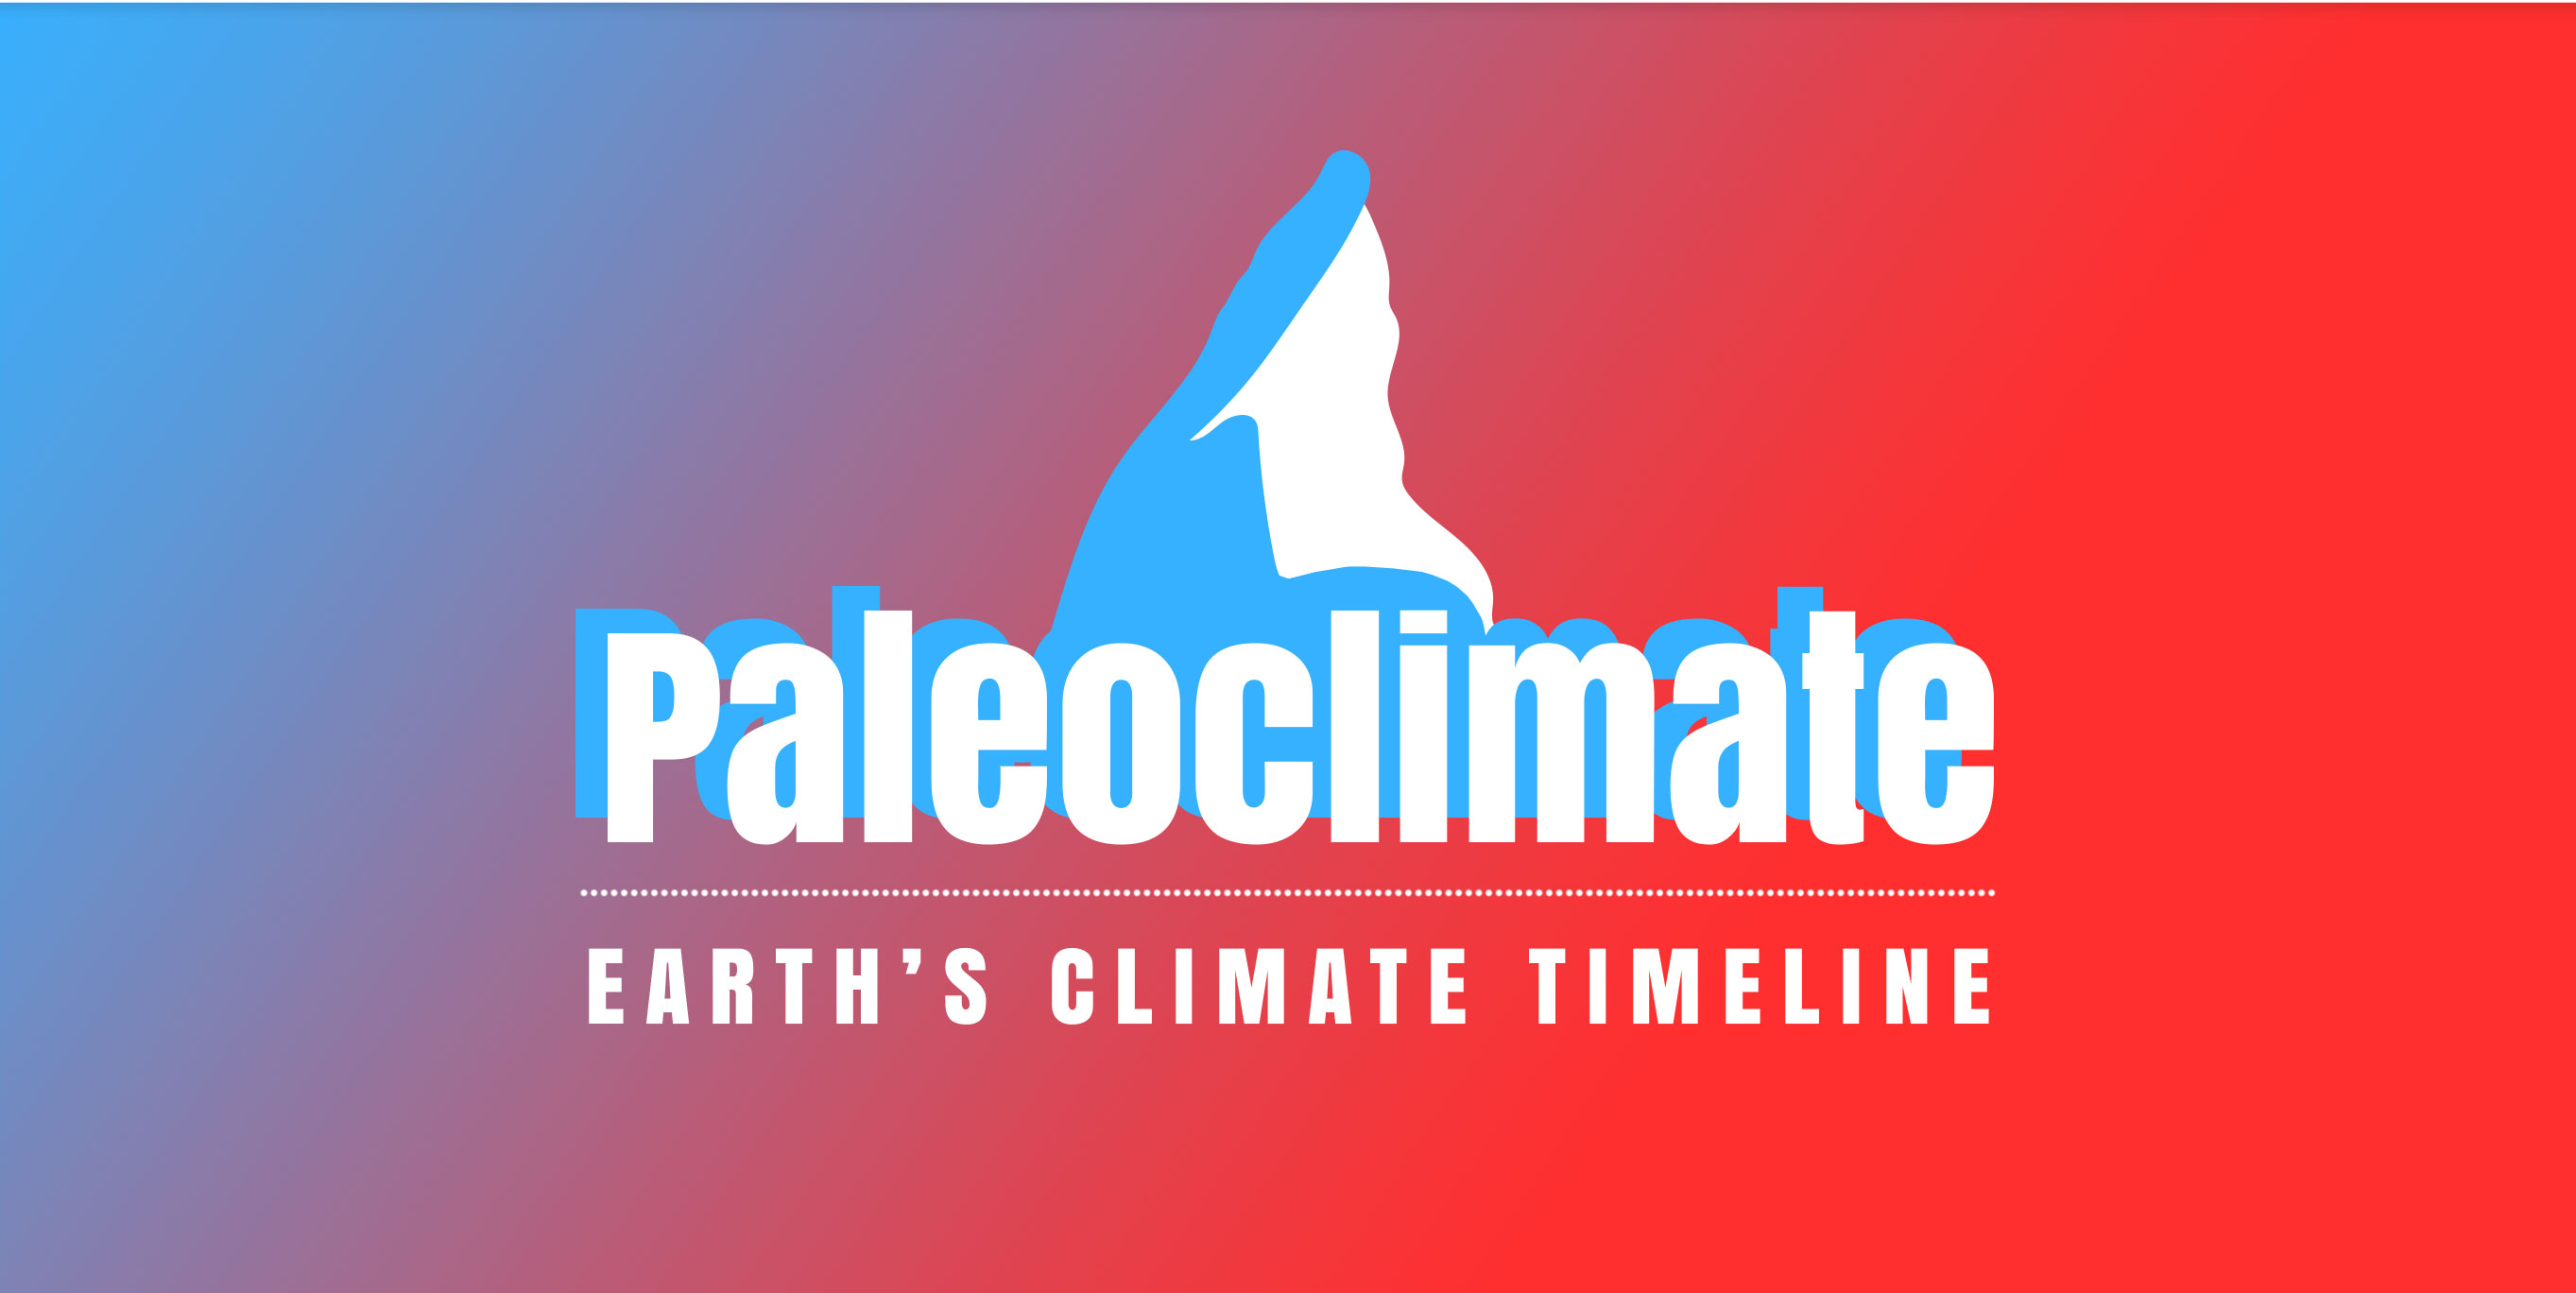 Paleoclimate Timeline graphic